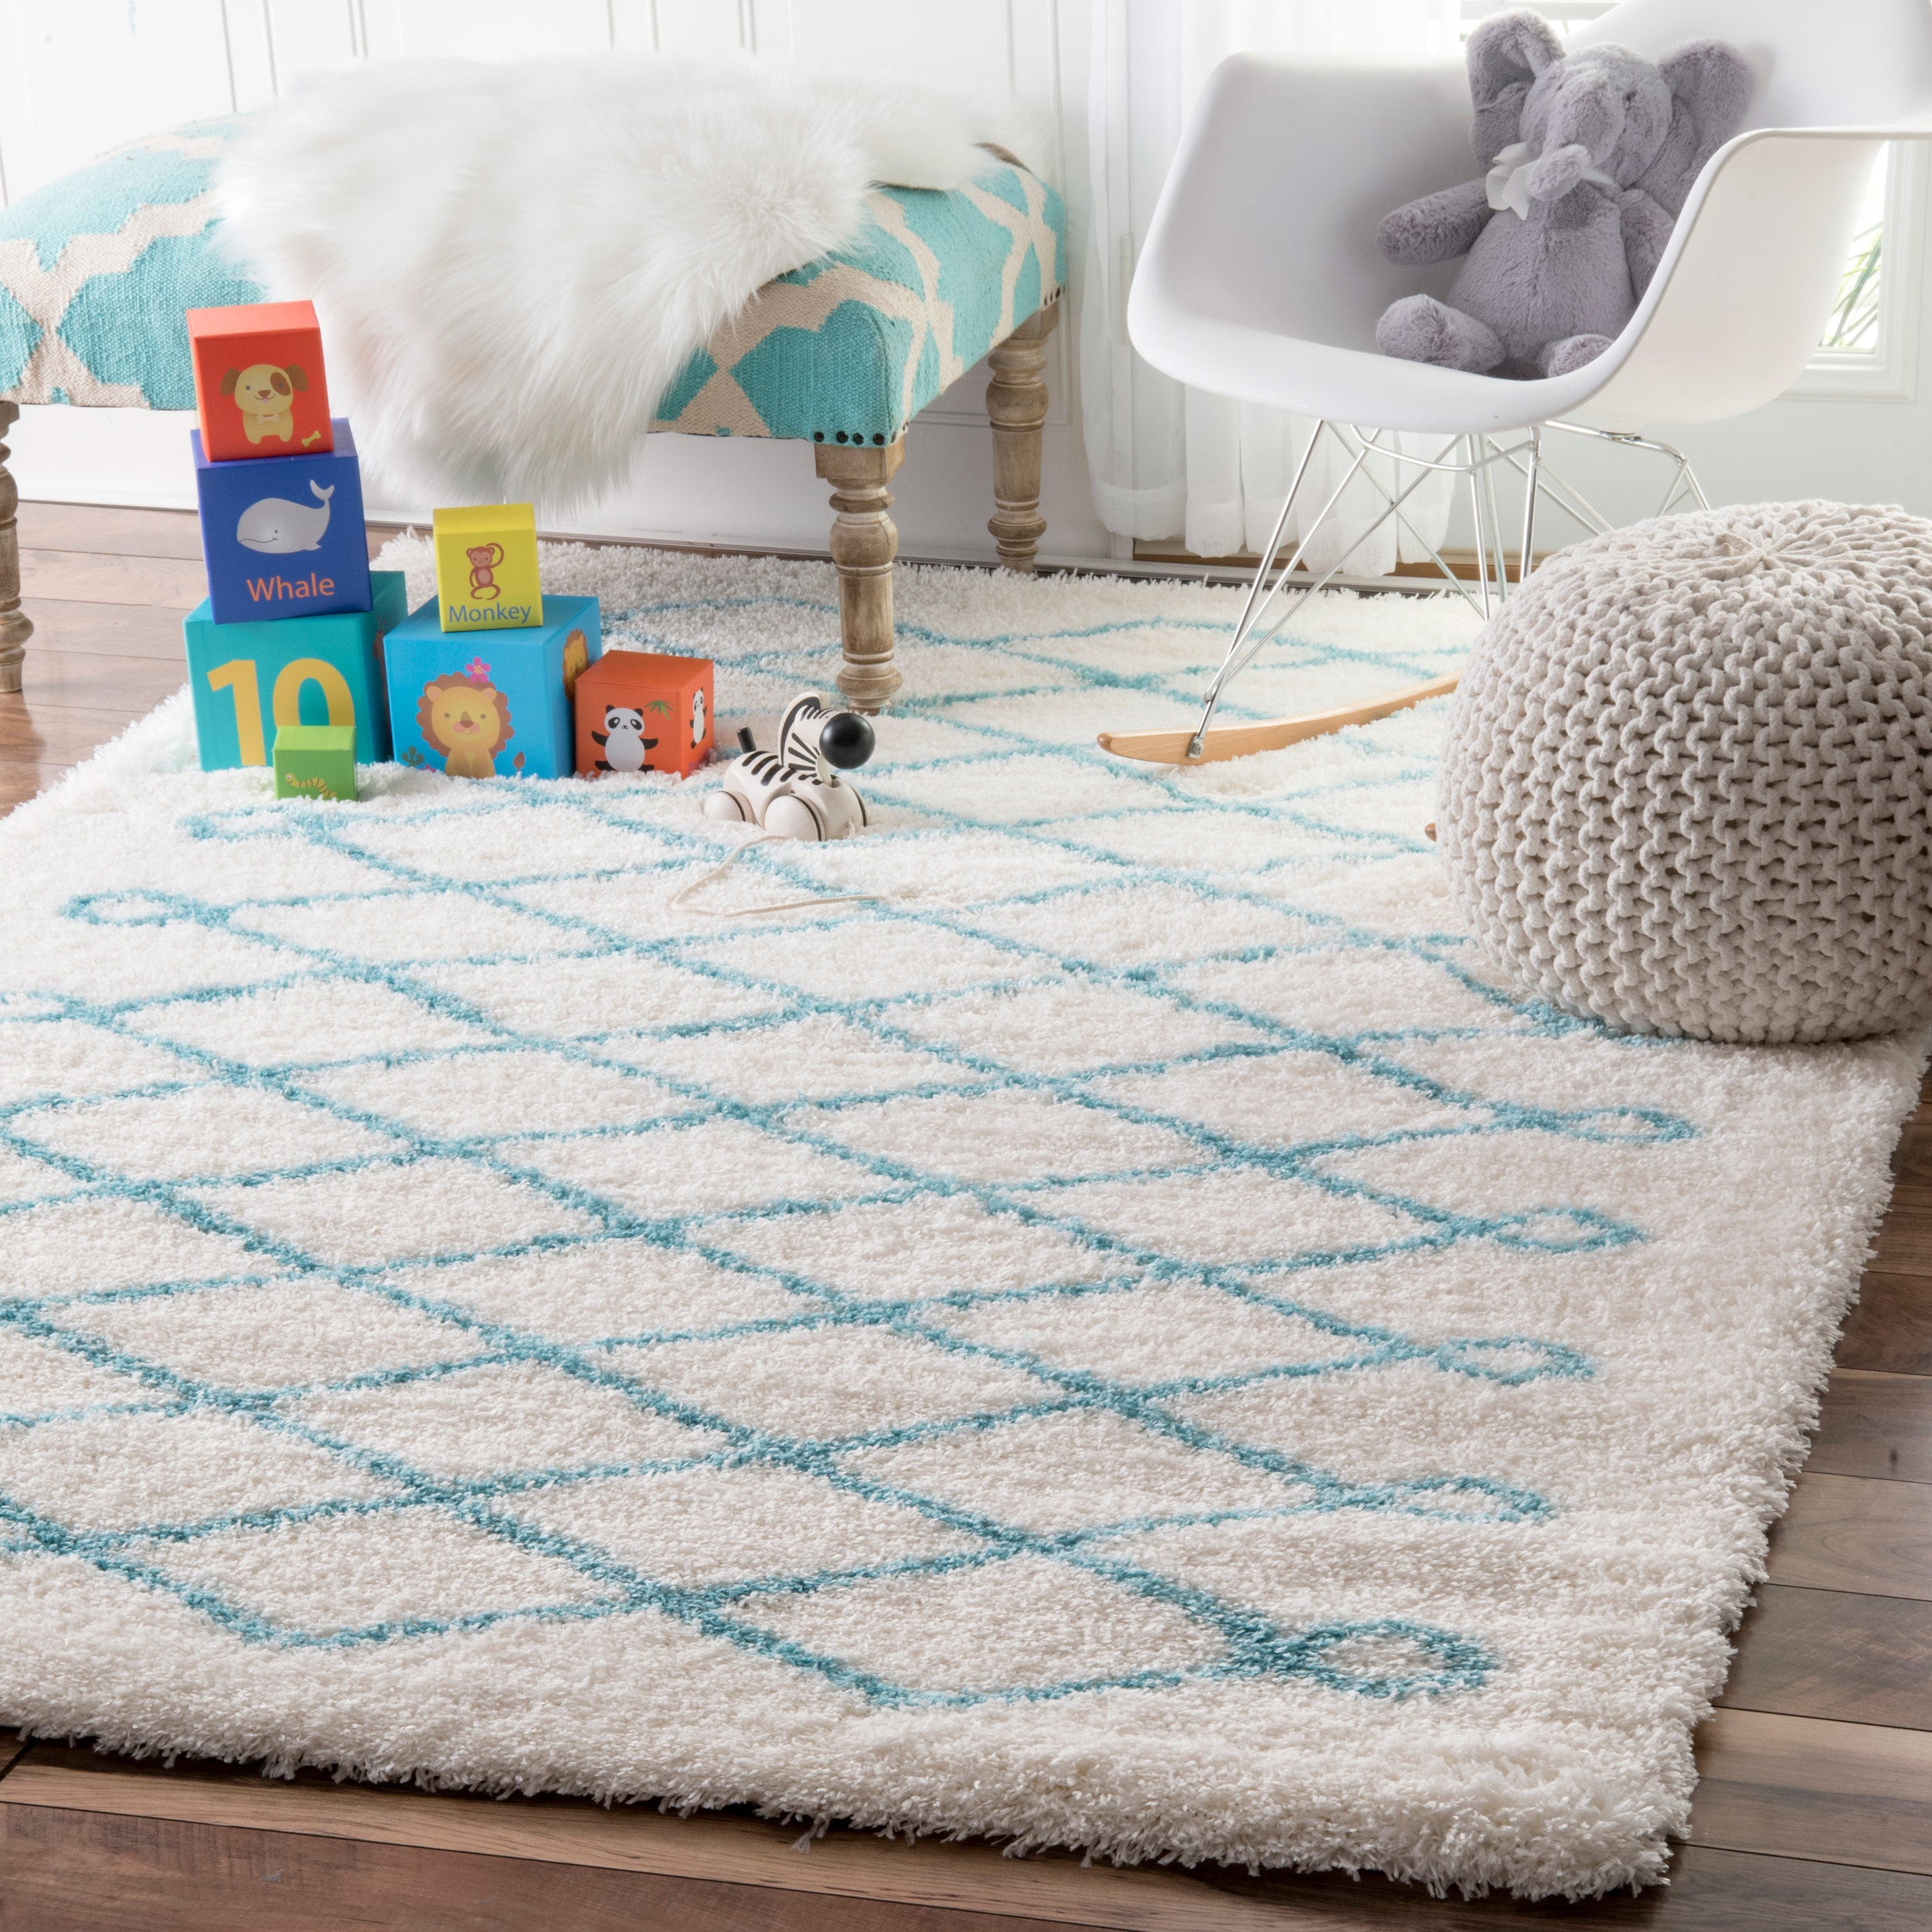 Nuloom Soft And Plush Cloudy Diamond Kids Nursery Baby Blue Rug 5 X27